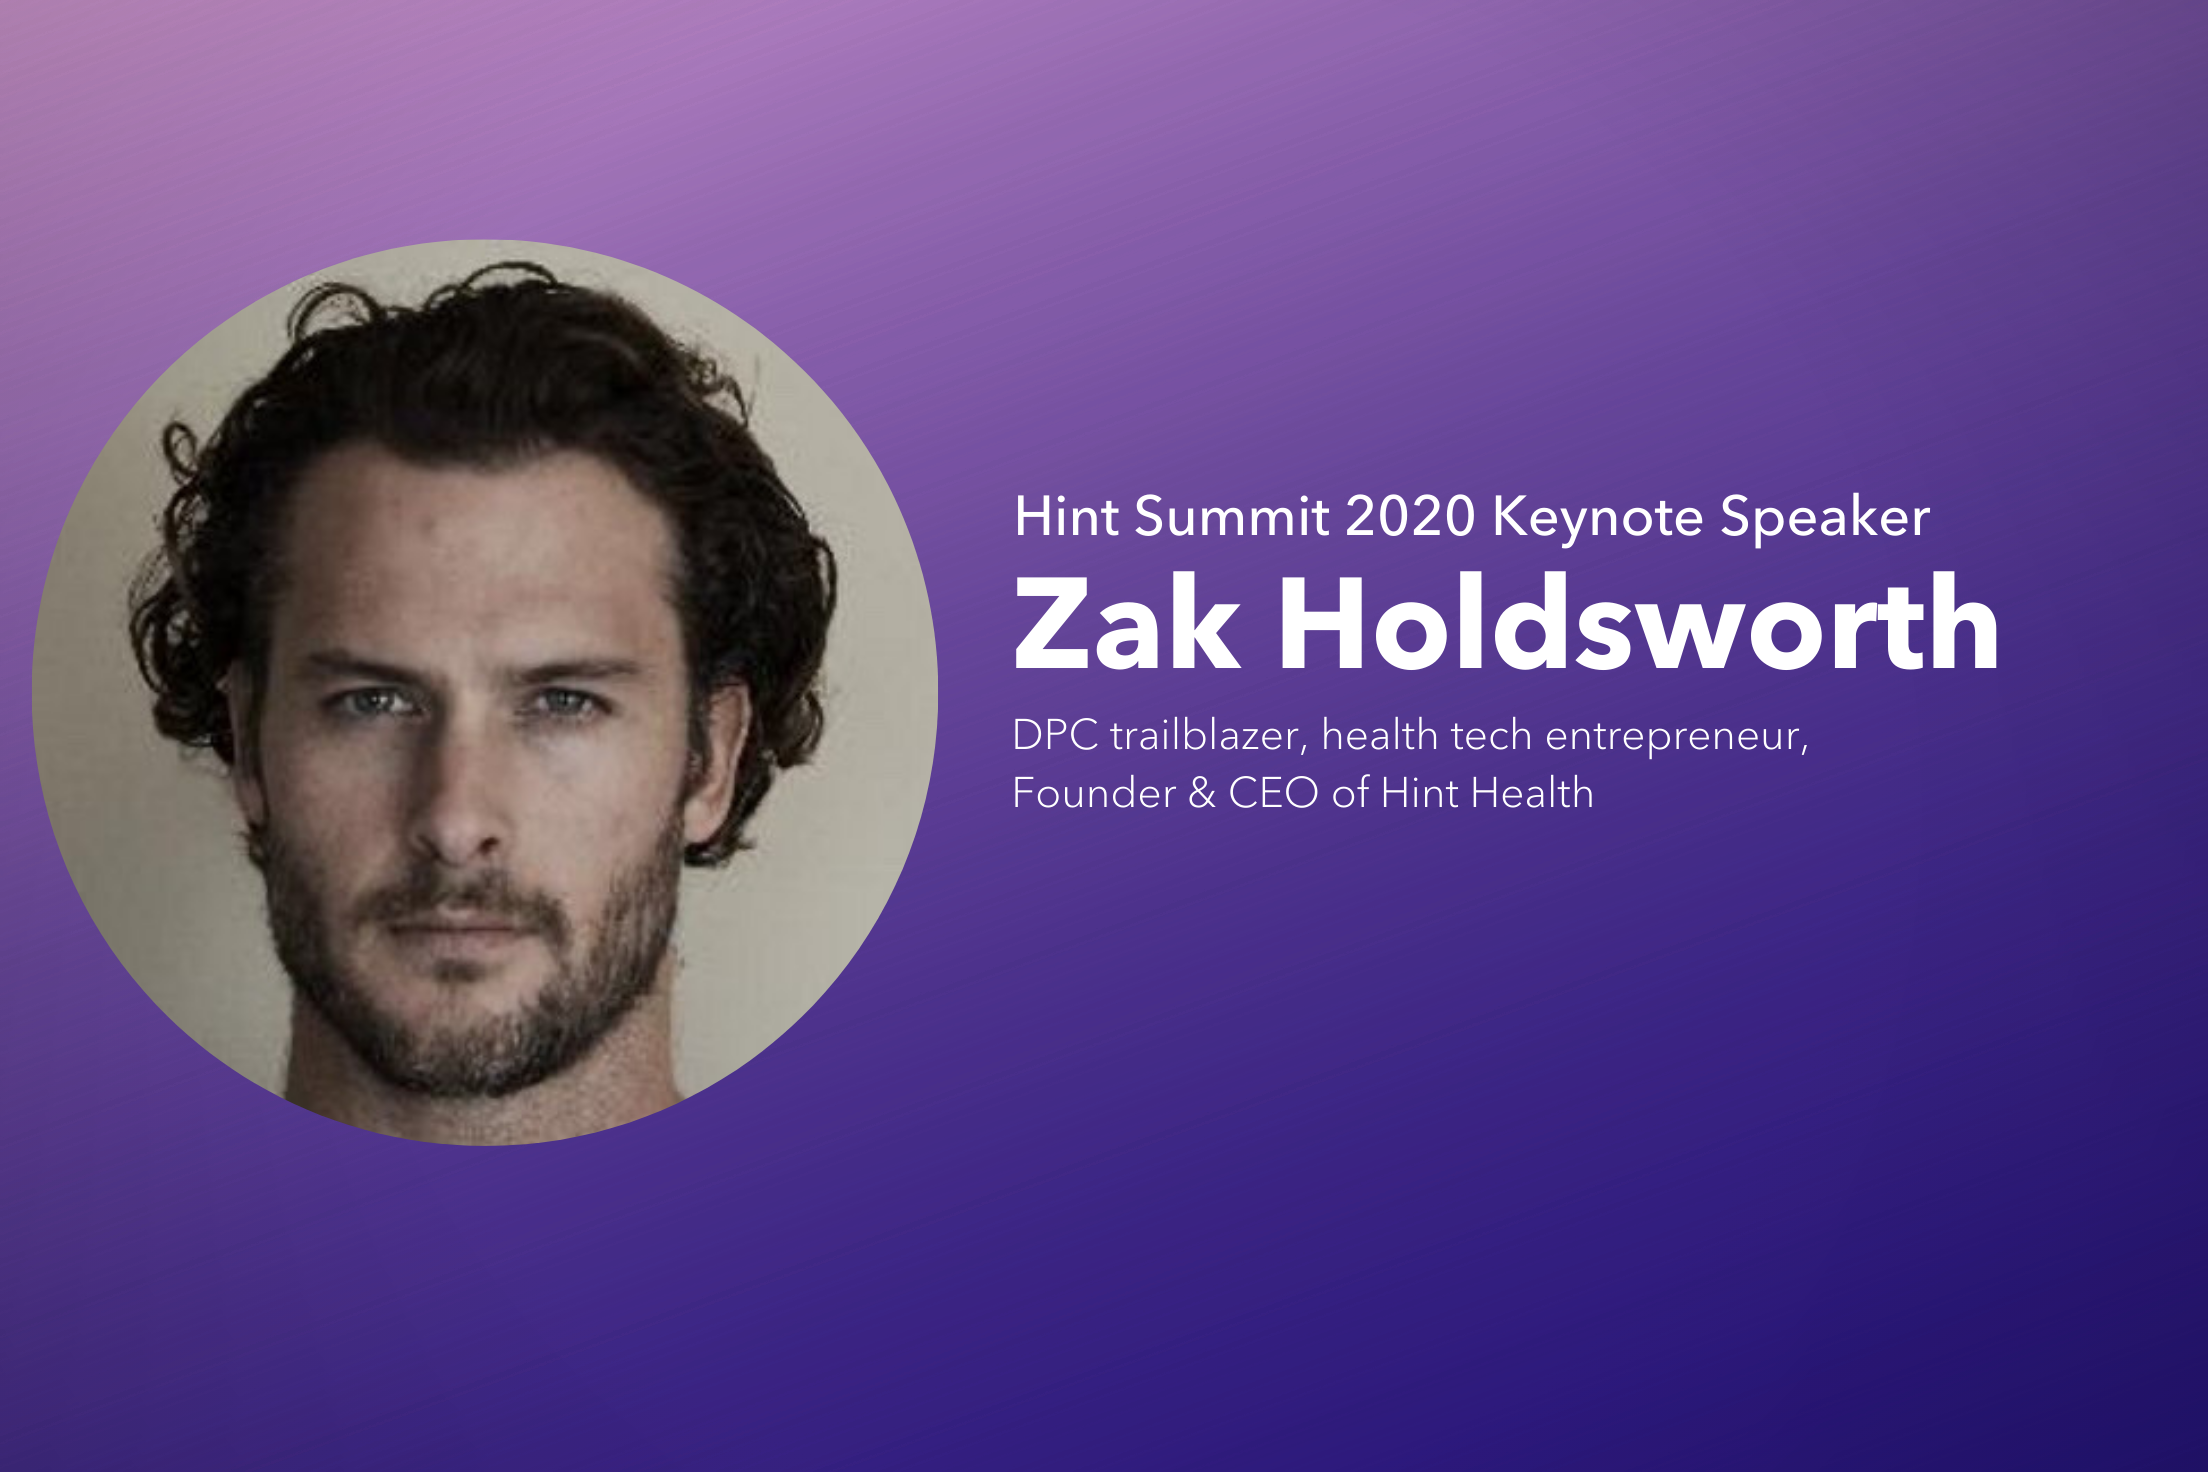 Join Zak Holdsworth, Technology Strategist & CEO of Hint Health, at Hint Summit 2020